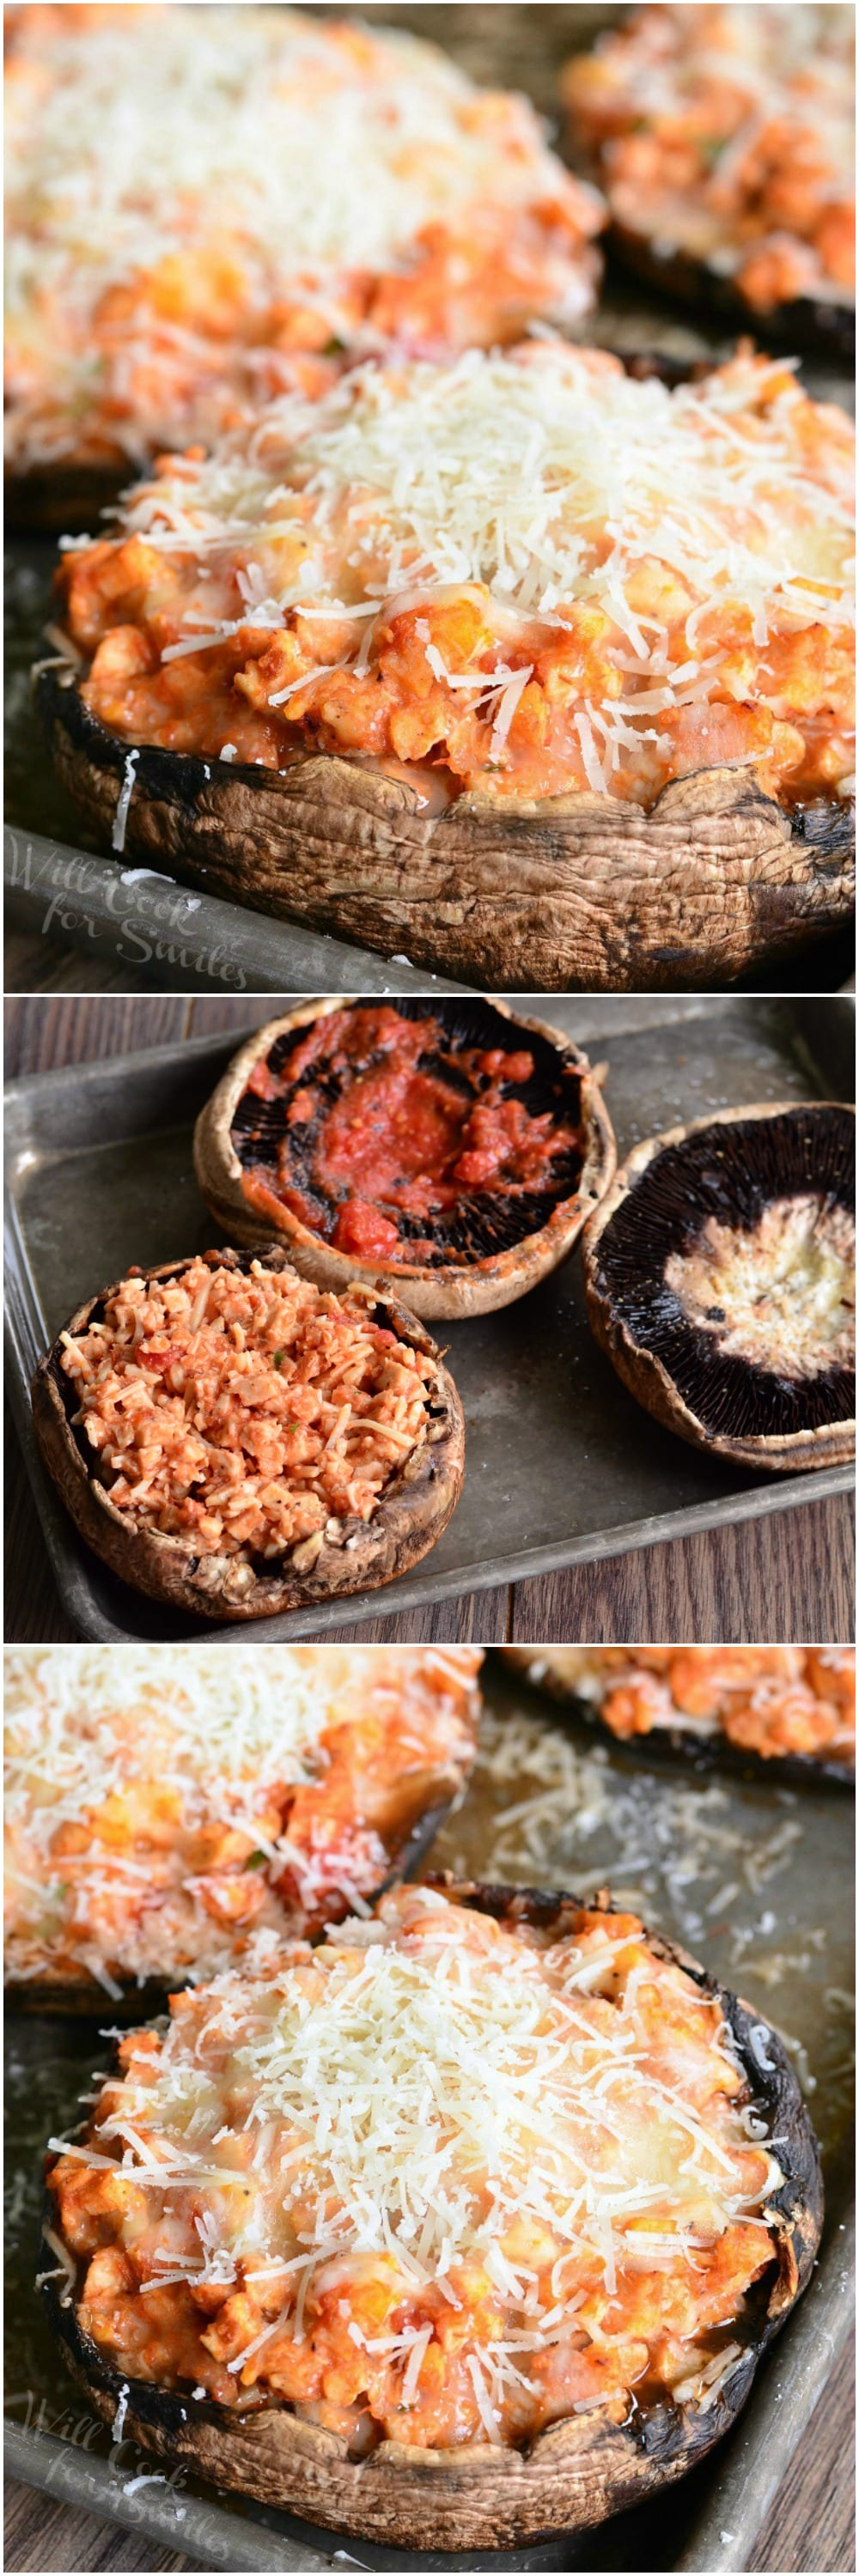 Chicken Parmesan Stuffed Portobello. Absolutely delicious, LIGHT take on a classic Chicken Parmesan dish.